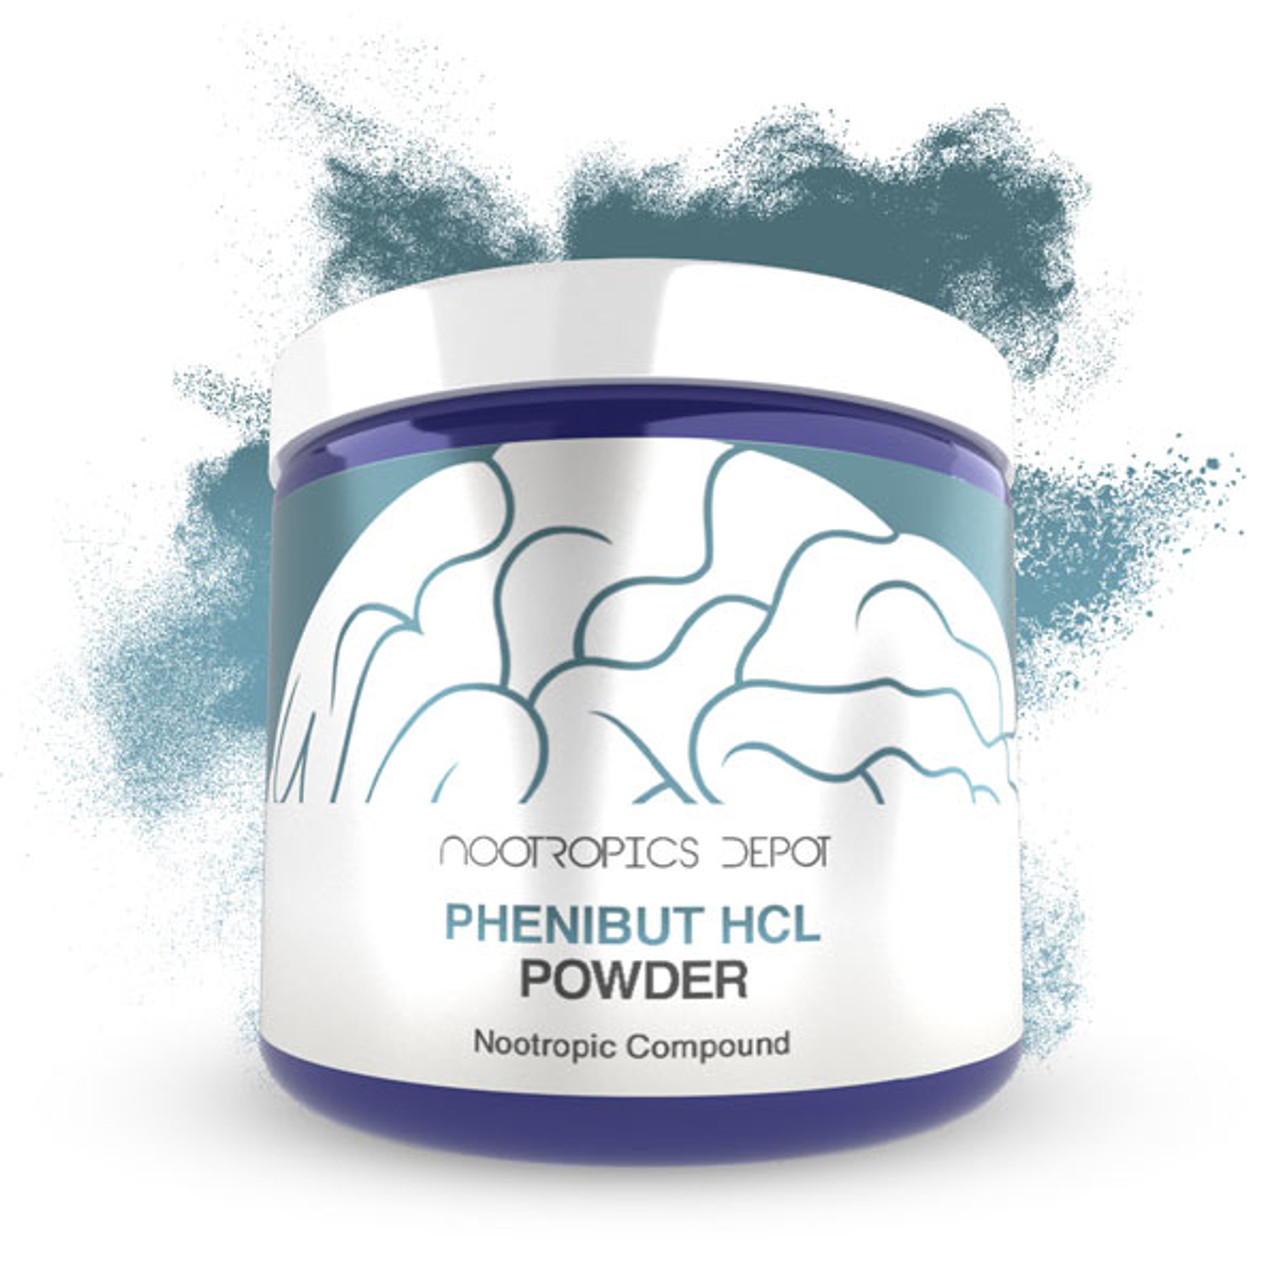 Buy Phenibut Powder | Nootropics Depot